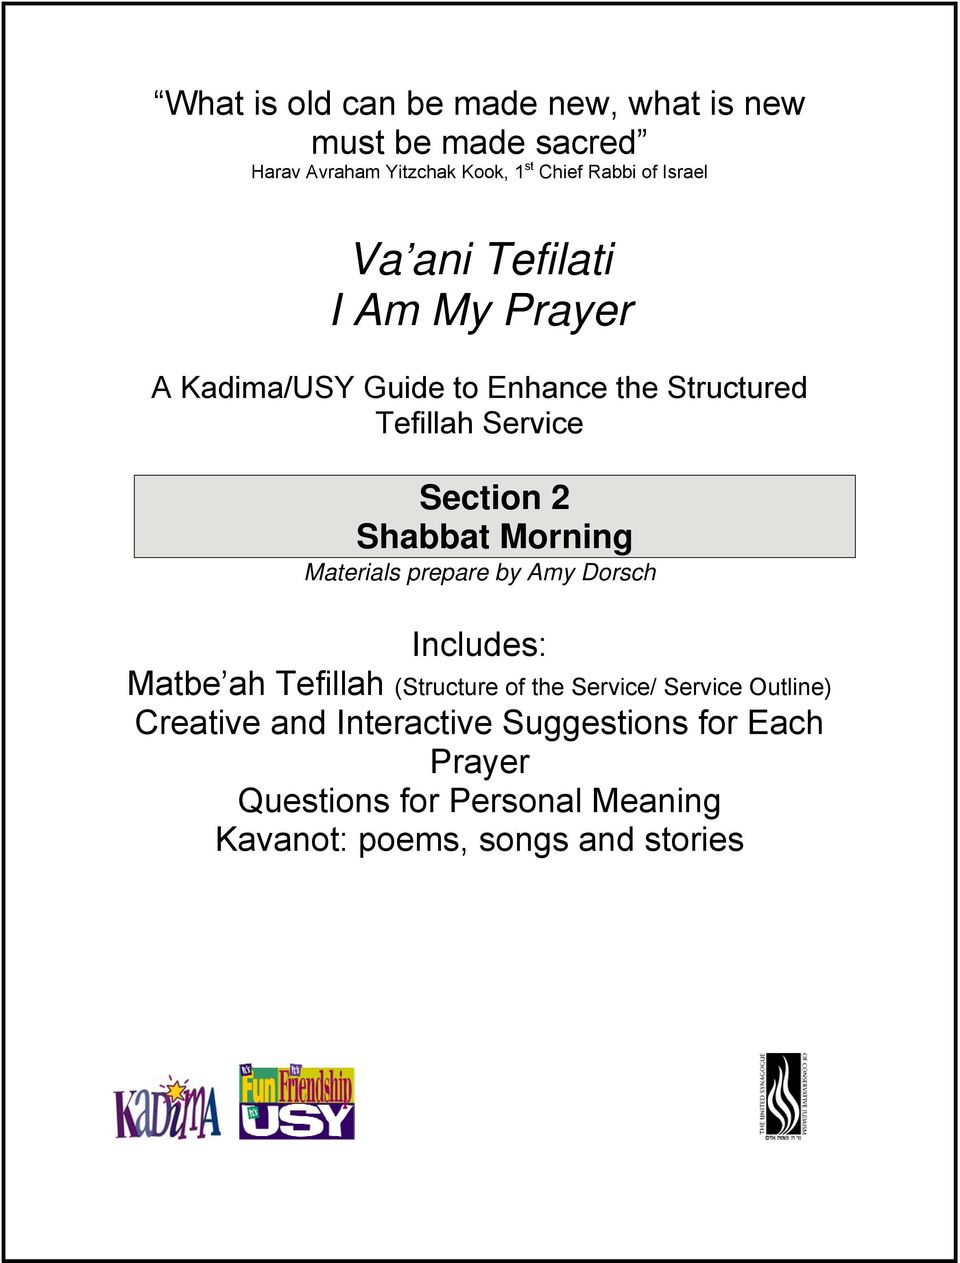 Va ani Tefilati I Am My Prayer - PDF